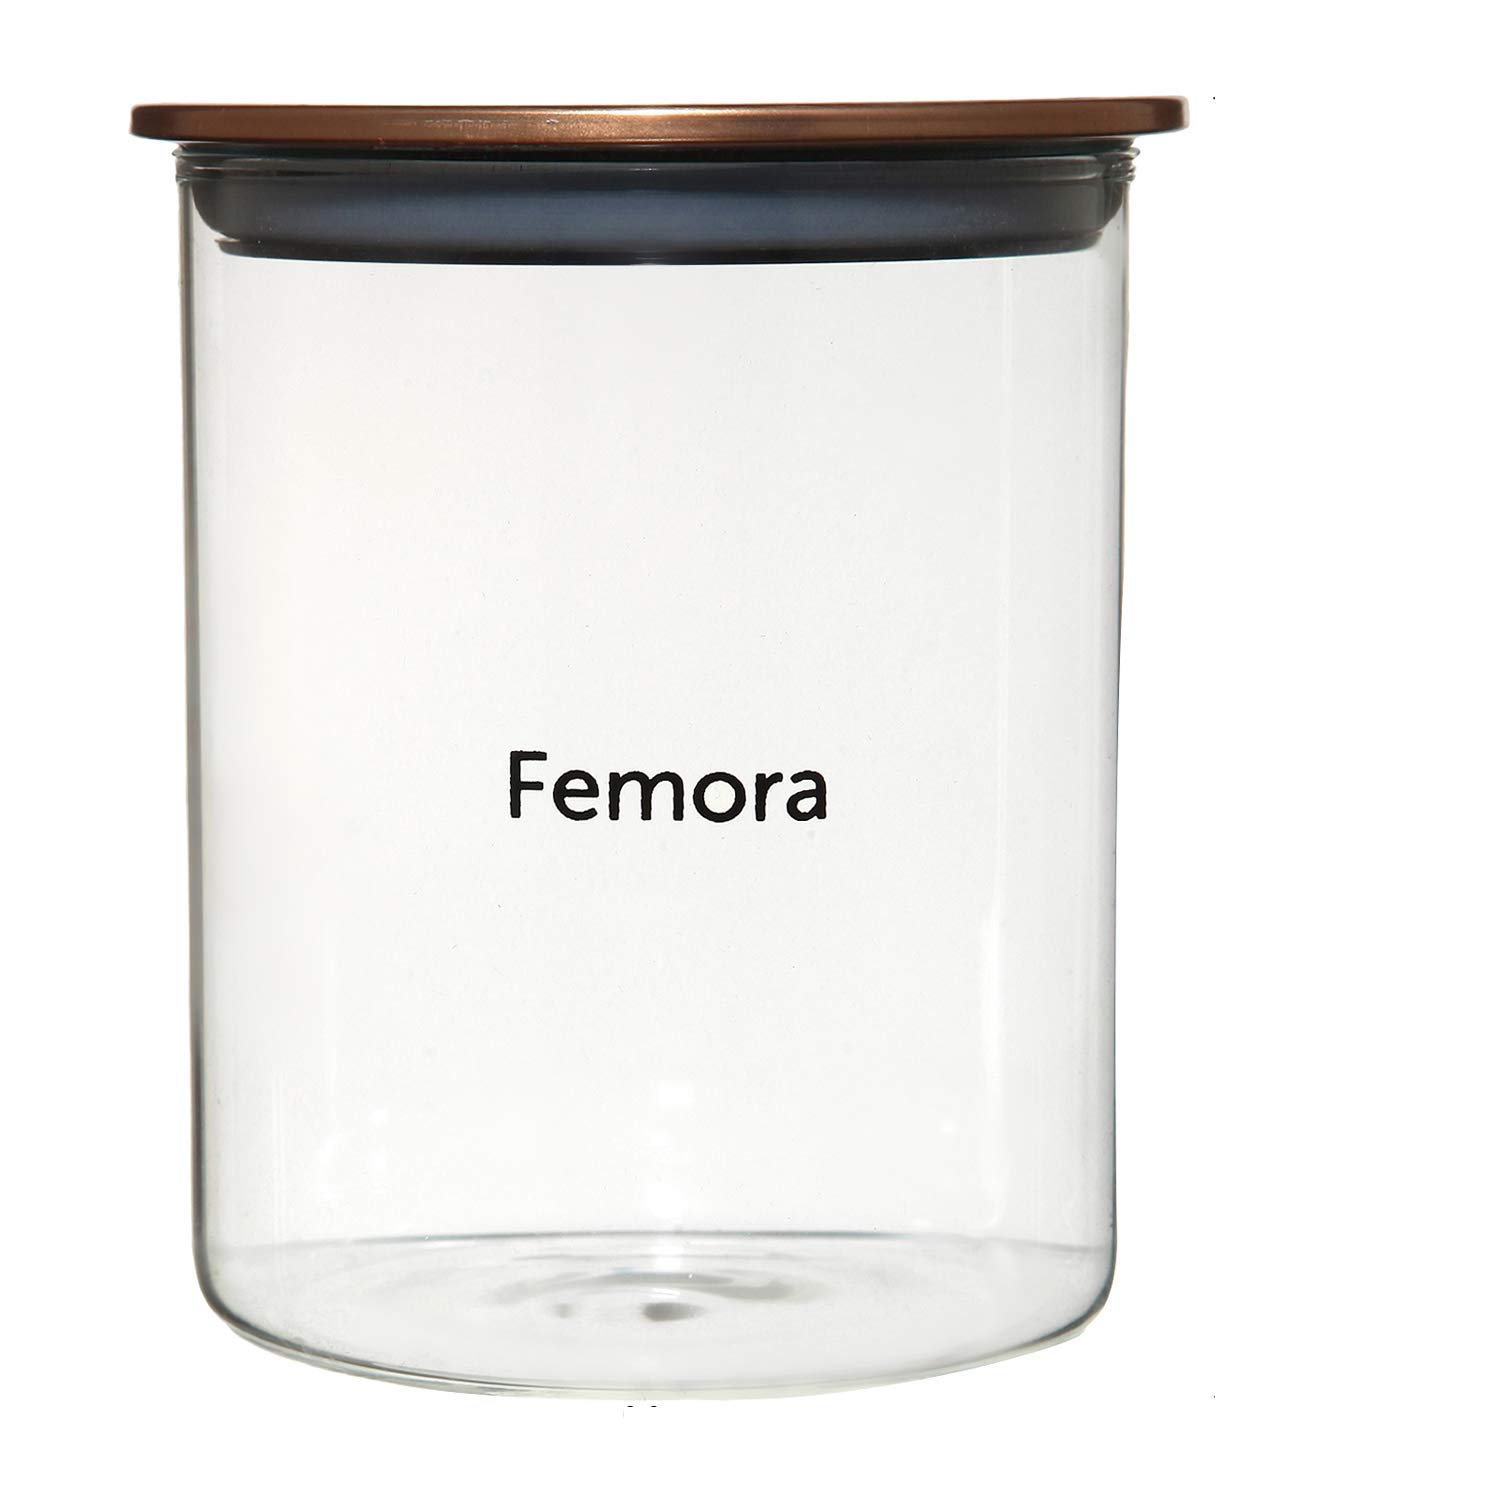 Femora Borosilicate Glass Air Tight Jars Golden Metallic Lid - 990ml